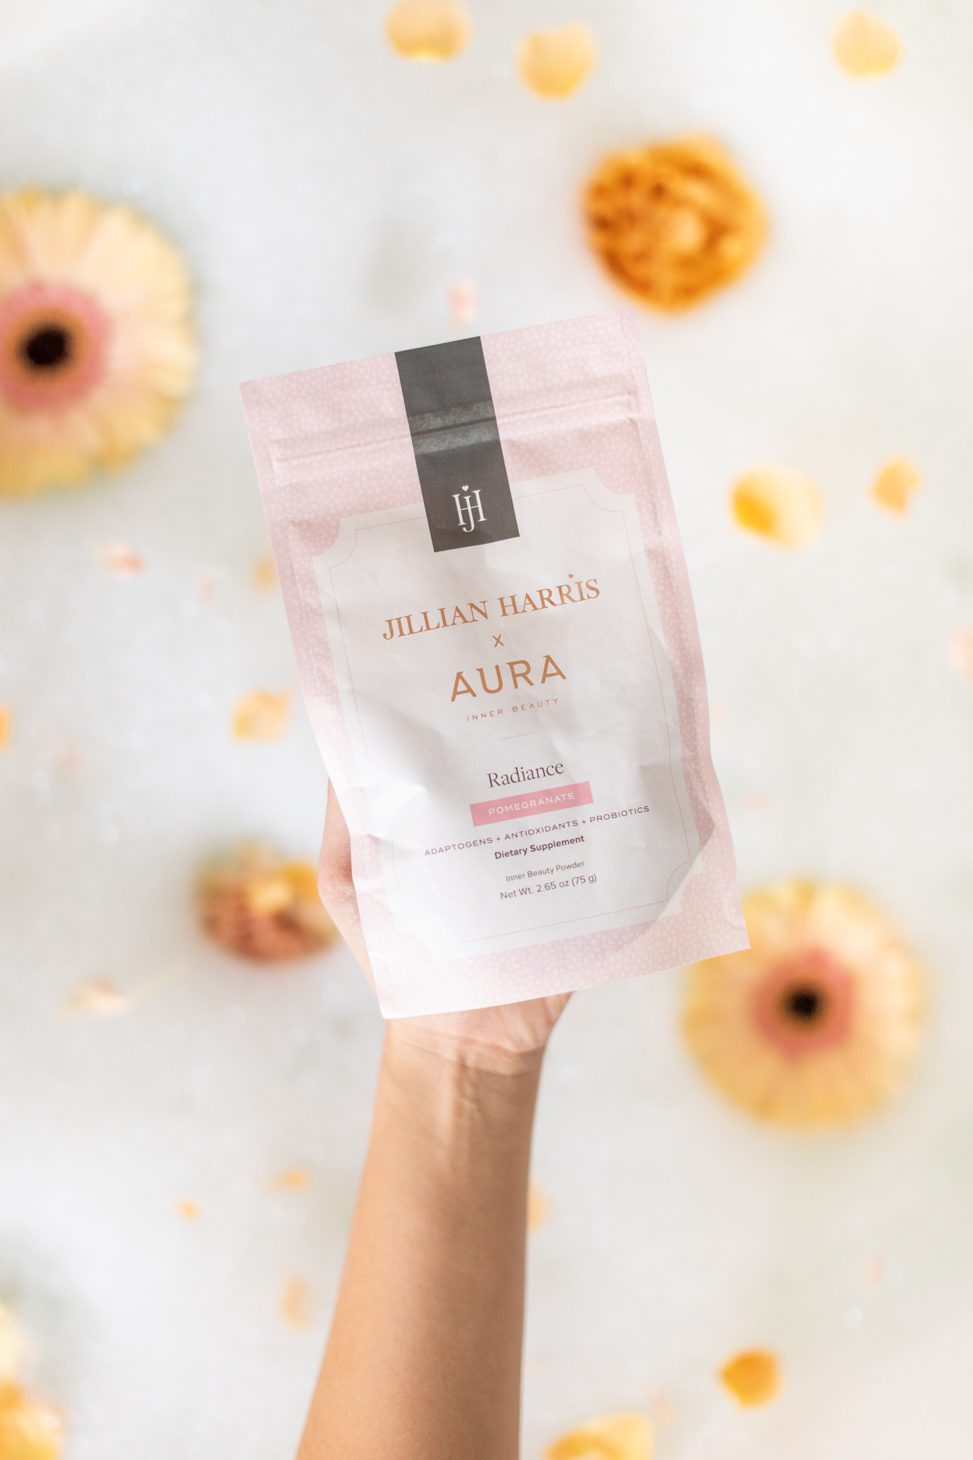 Jillian Harris x Aura Inner Beauty Radiance Supplement